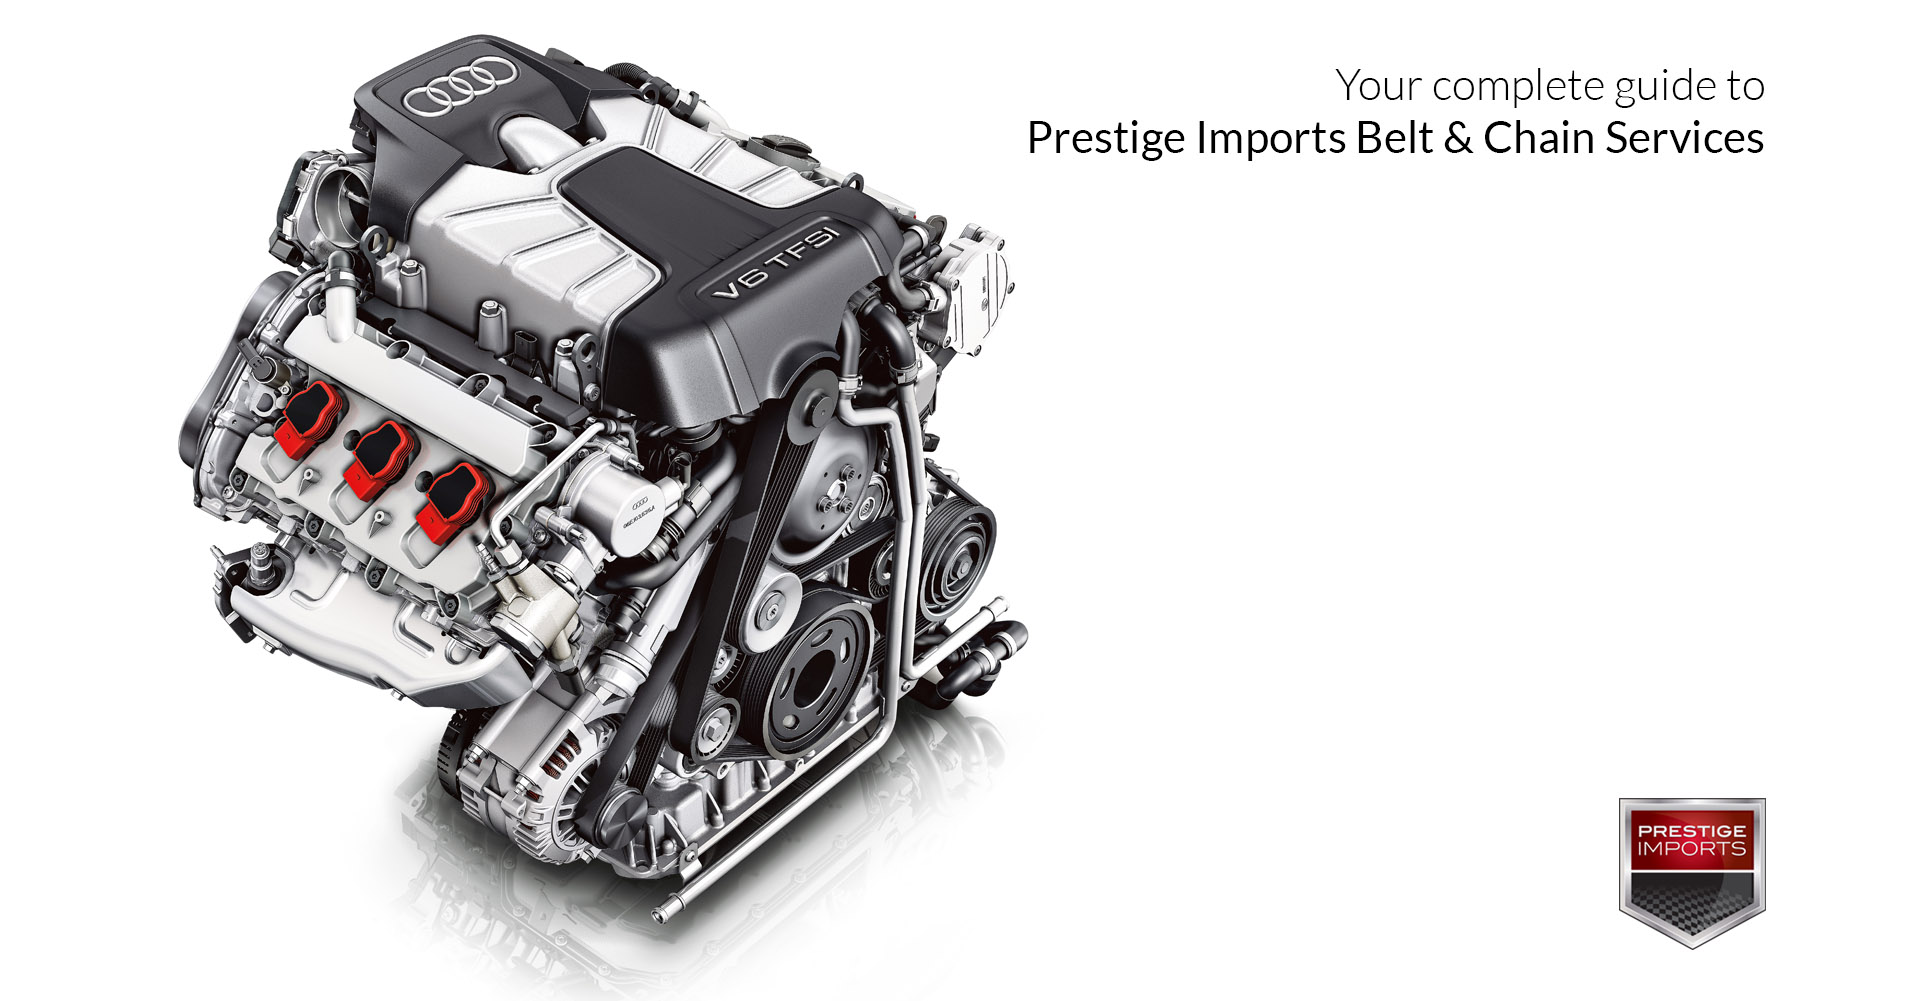 Complete guide to Porsche and Audi Belt and Chain Services